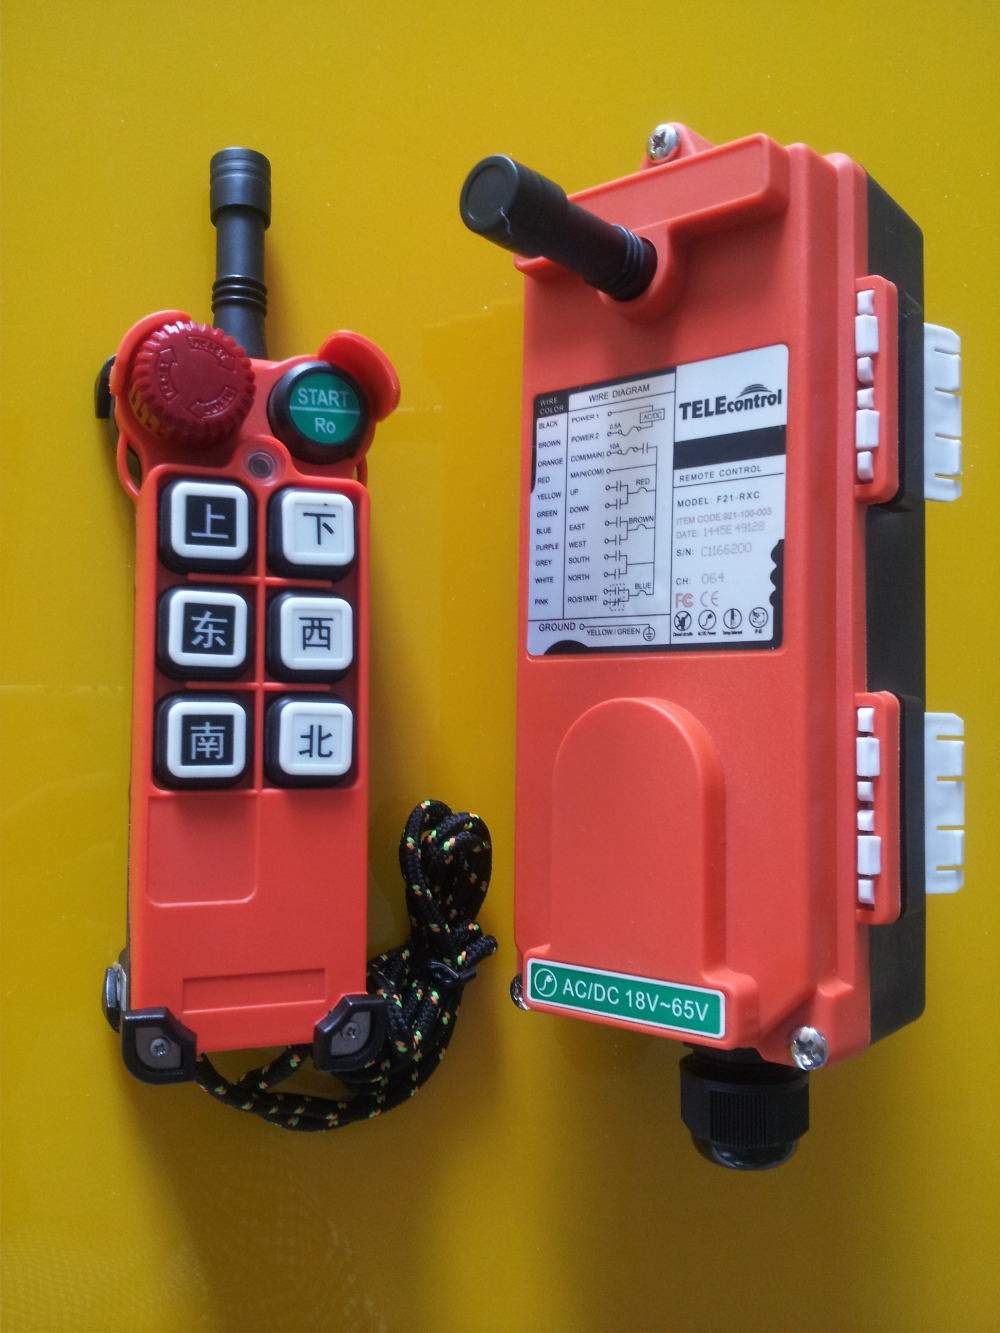 Remote Control Electric Hoist Wiring Diagram - Wiring Diagrams on